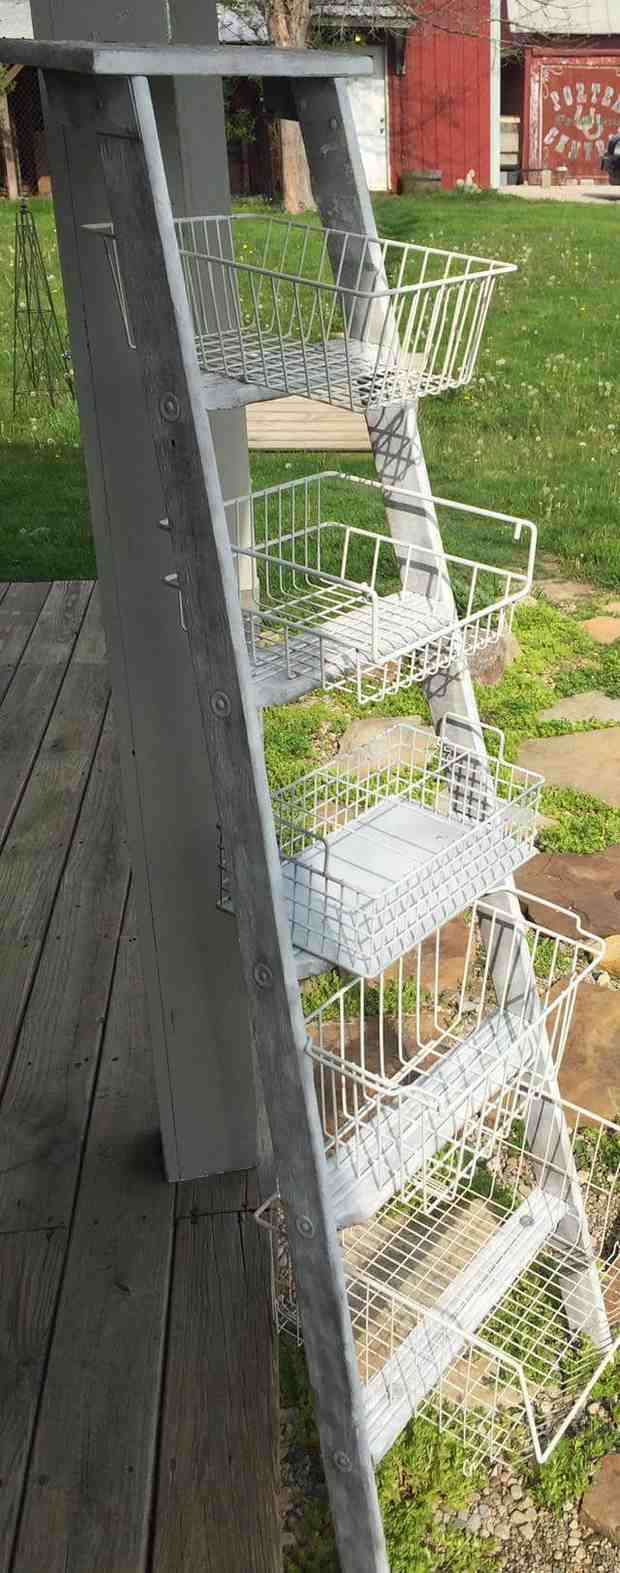 upcycled ladder shelves creative garden diy patio project idea